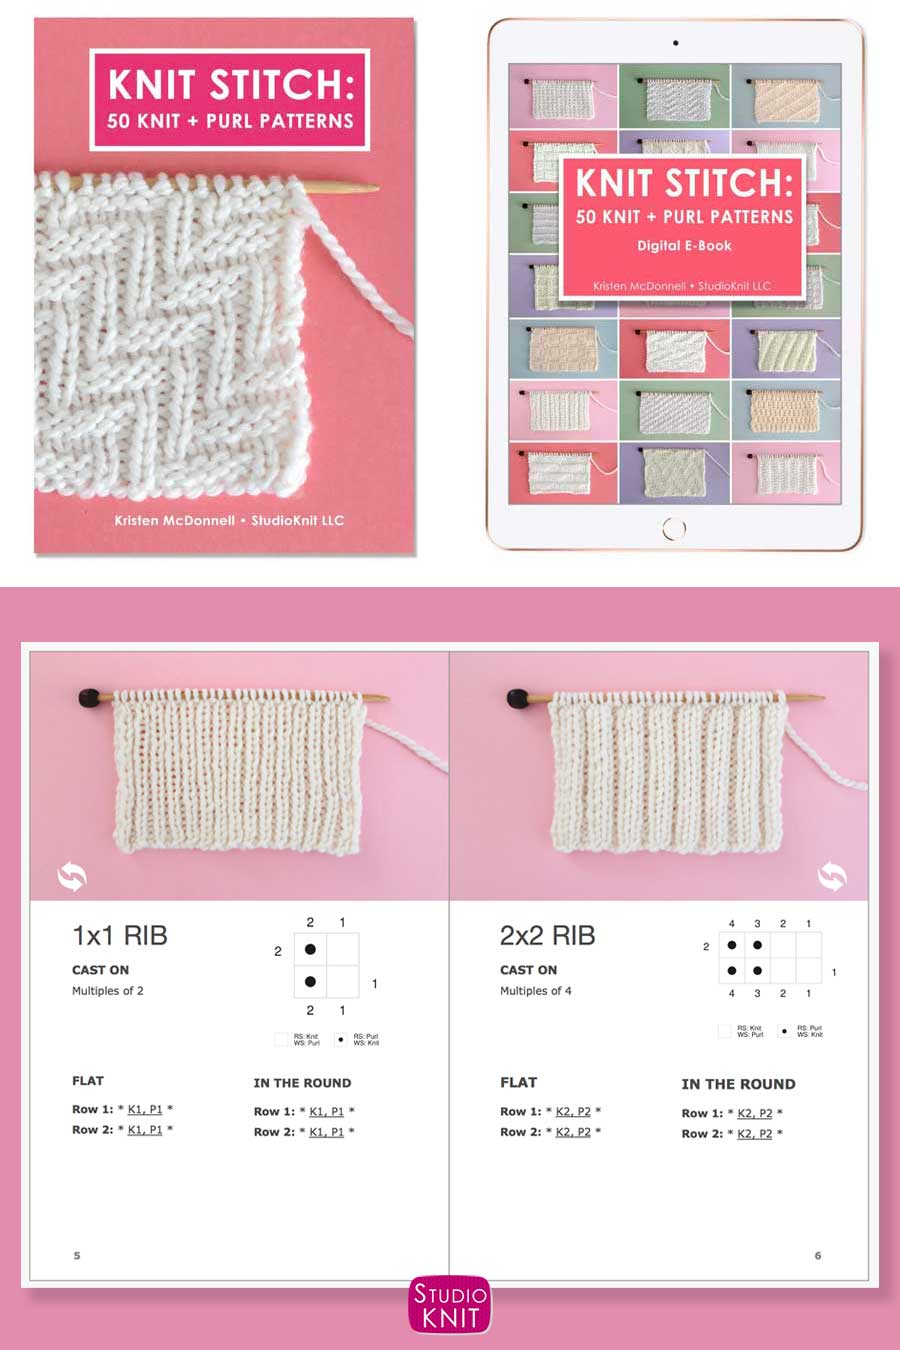 Knit Stitch Pattern Book with 2X2 Stitch Pattern by Studio Knit